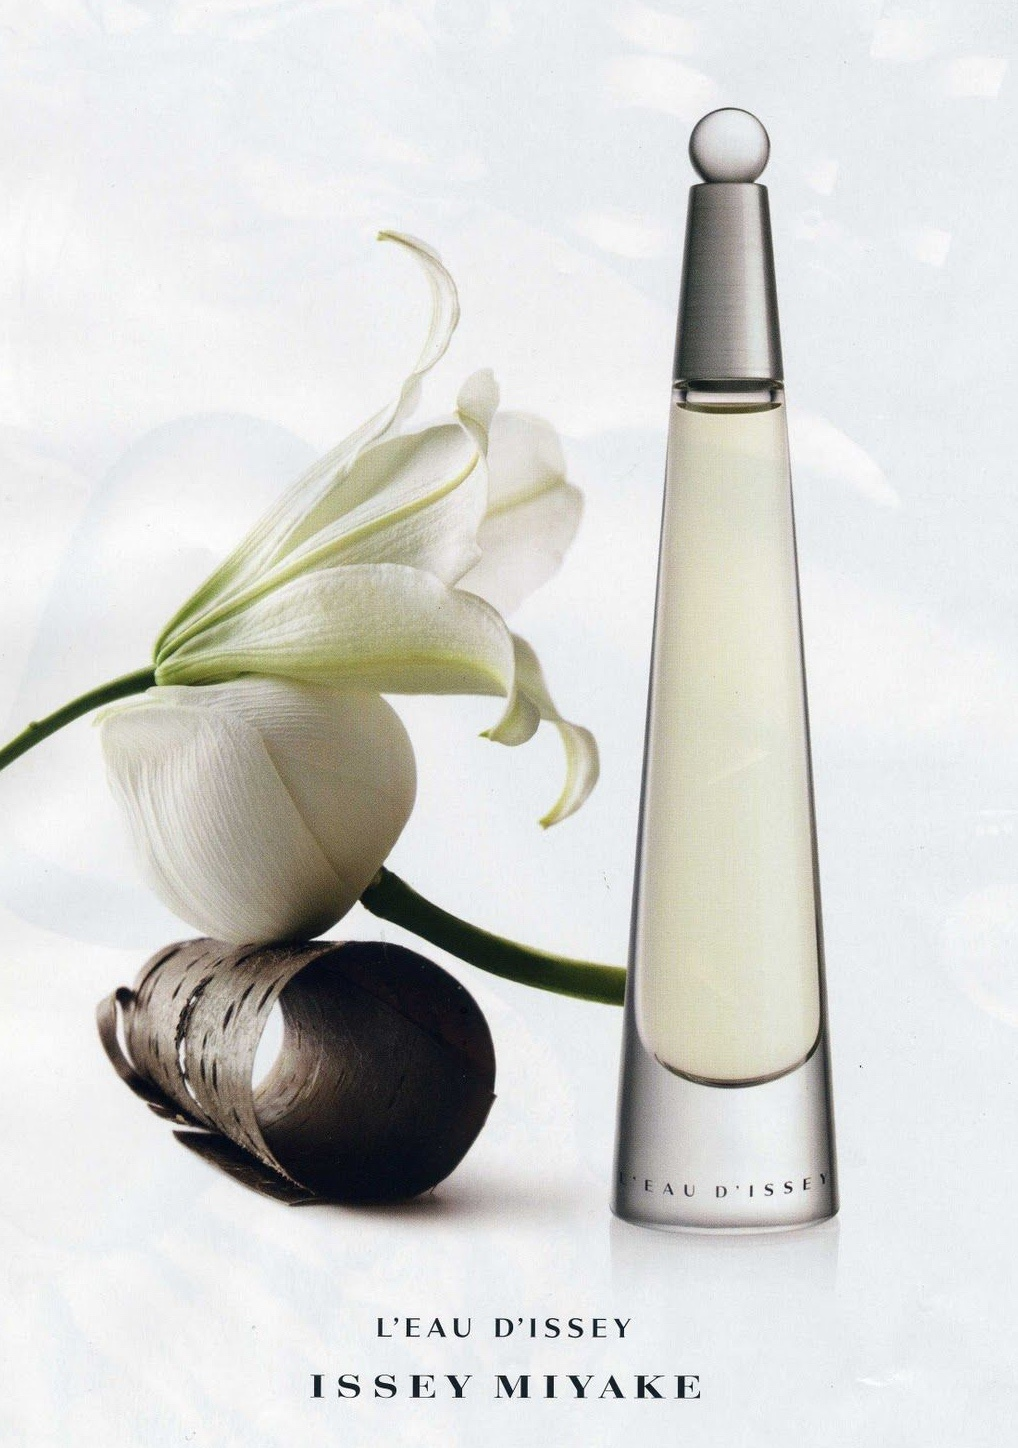 issey miyake l'eau d'issey香水